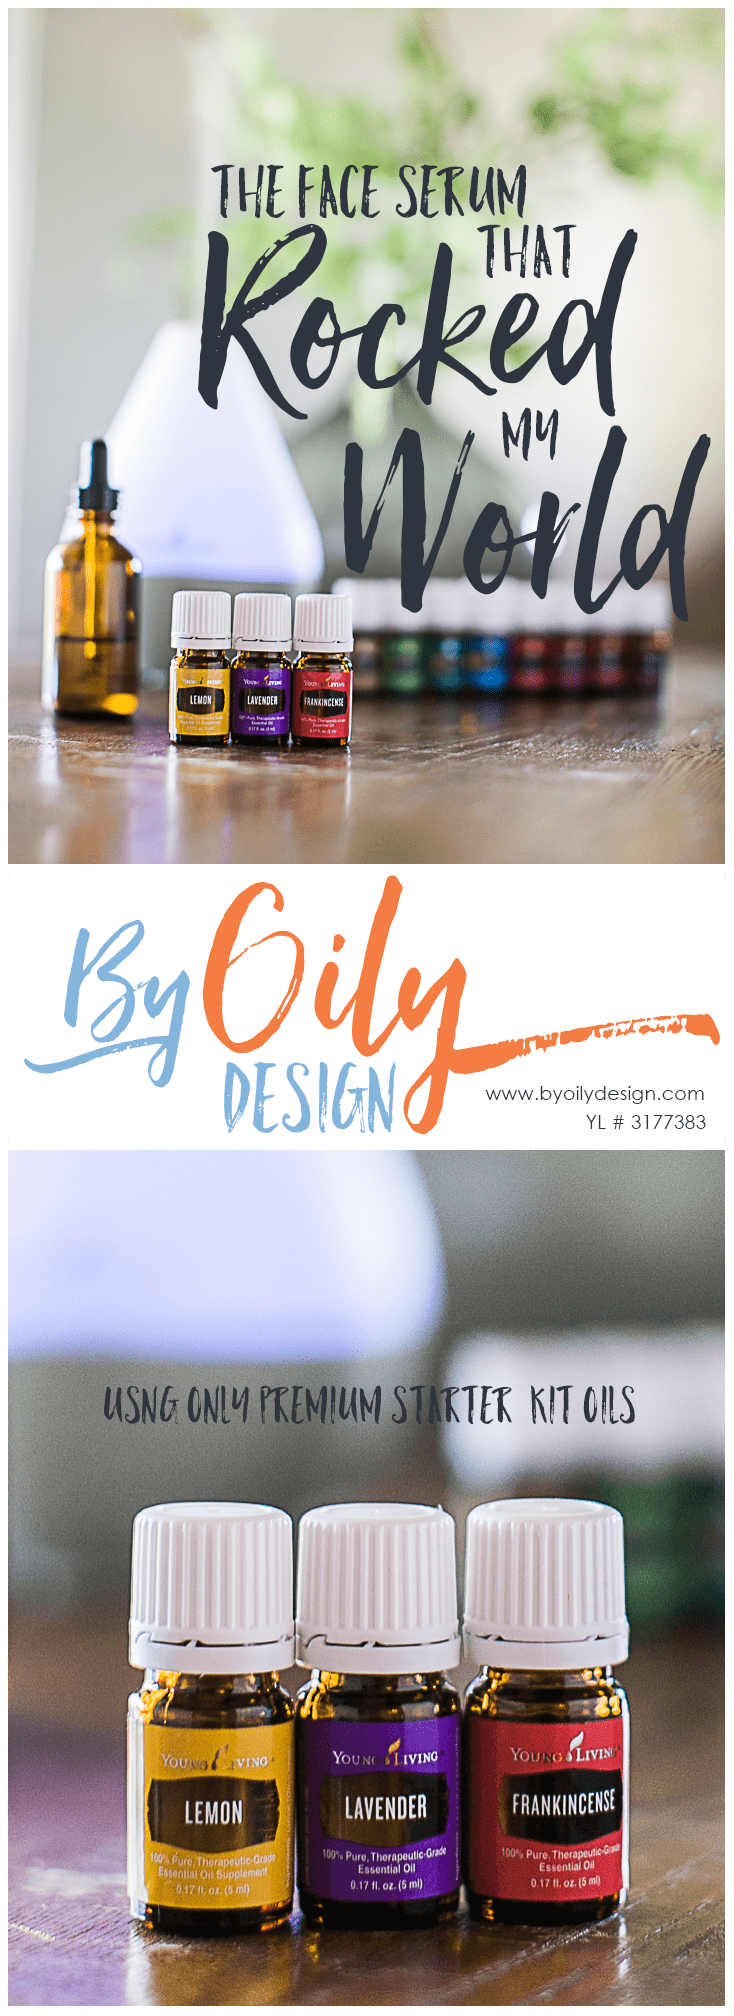 The DIY Essential Oil face serum recipe that rocked my world